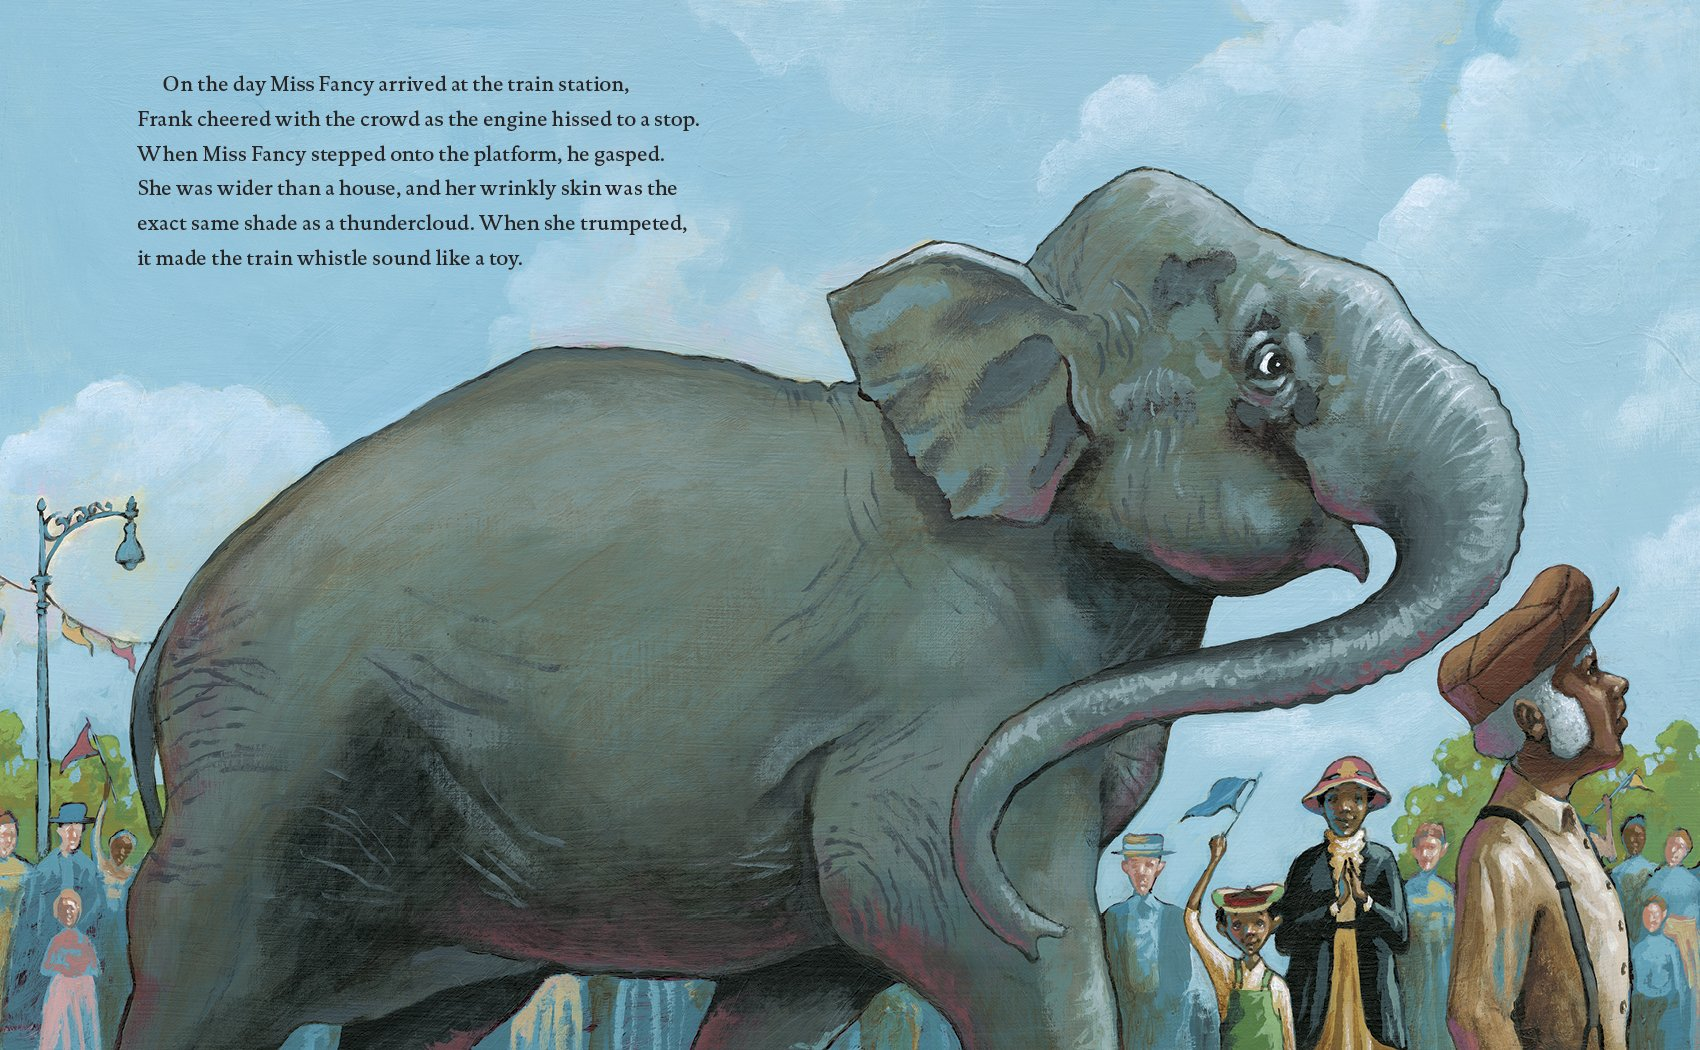 Meet the Elephant: A 15-Minute Book for Early Readers (Meet the Animals 32)